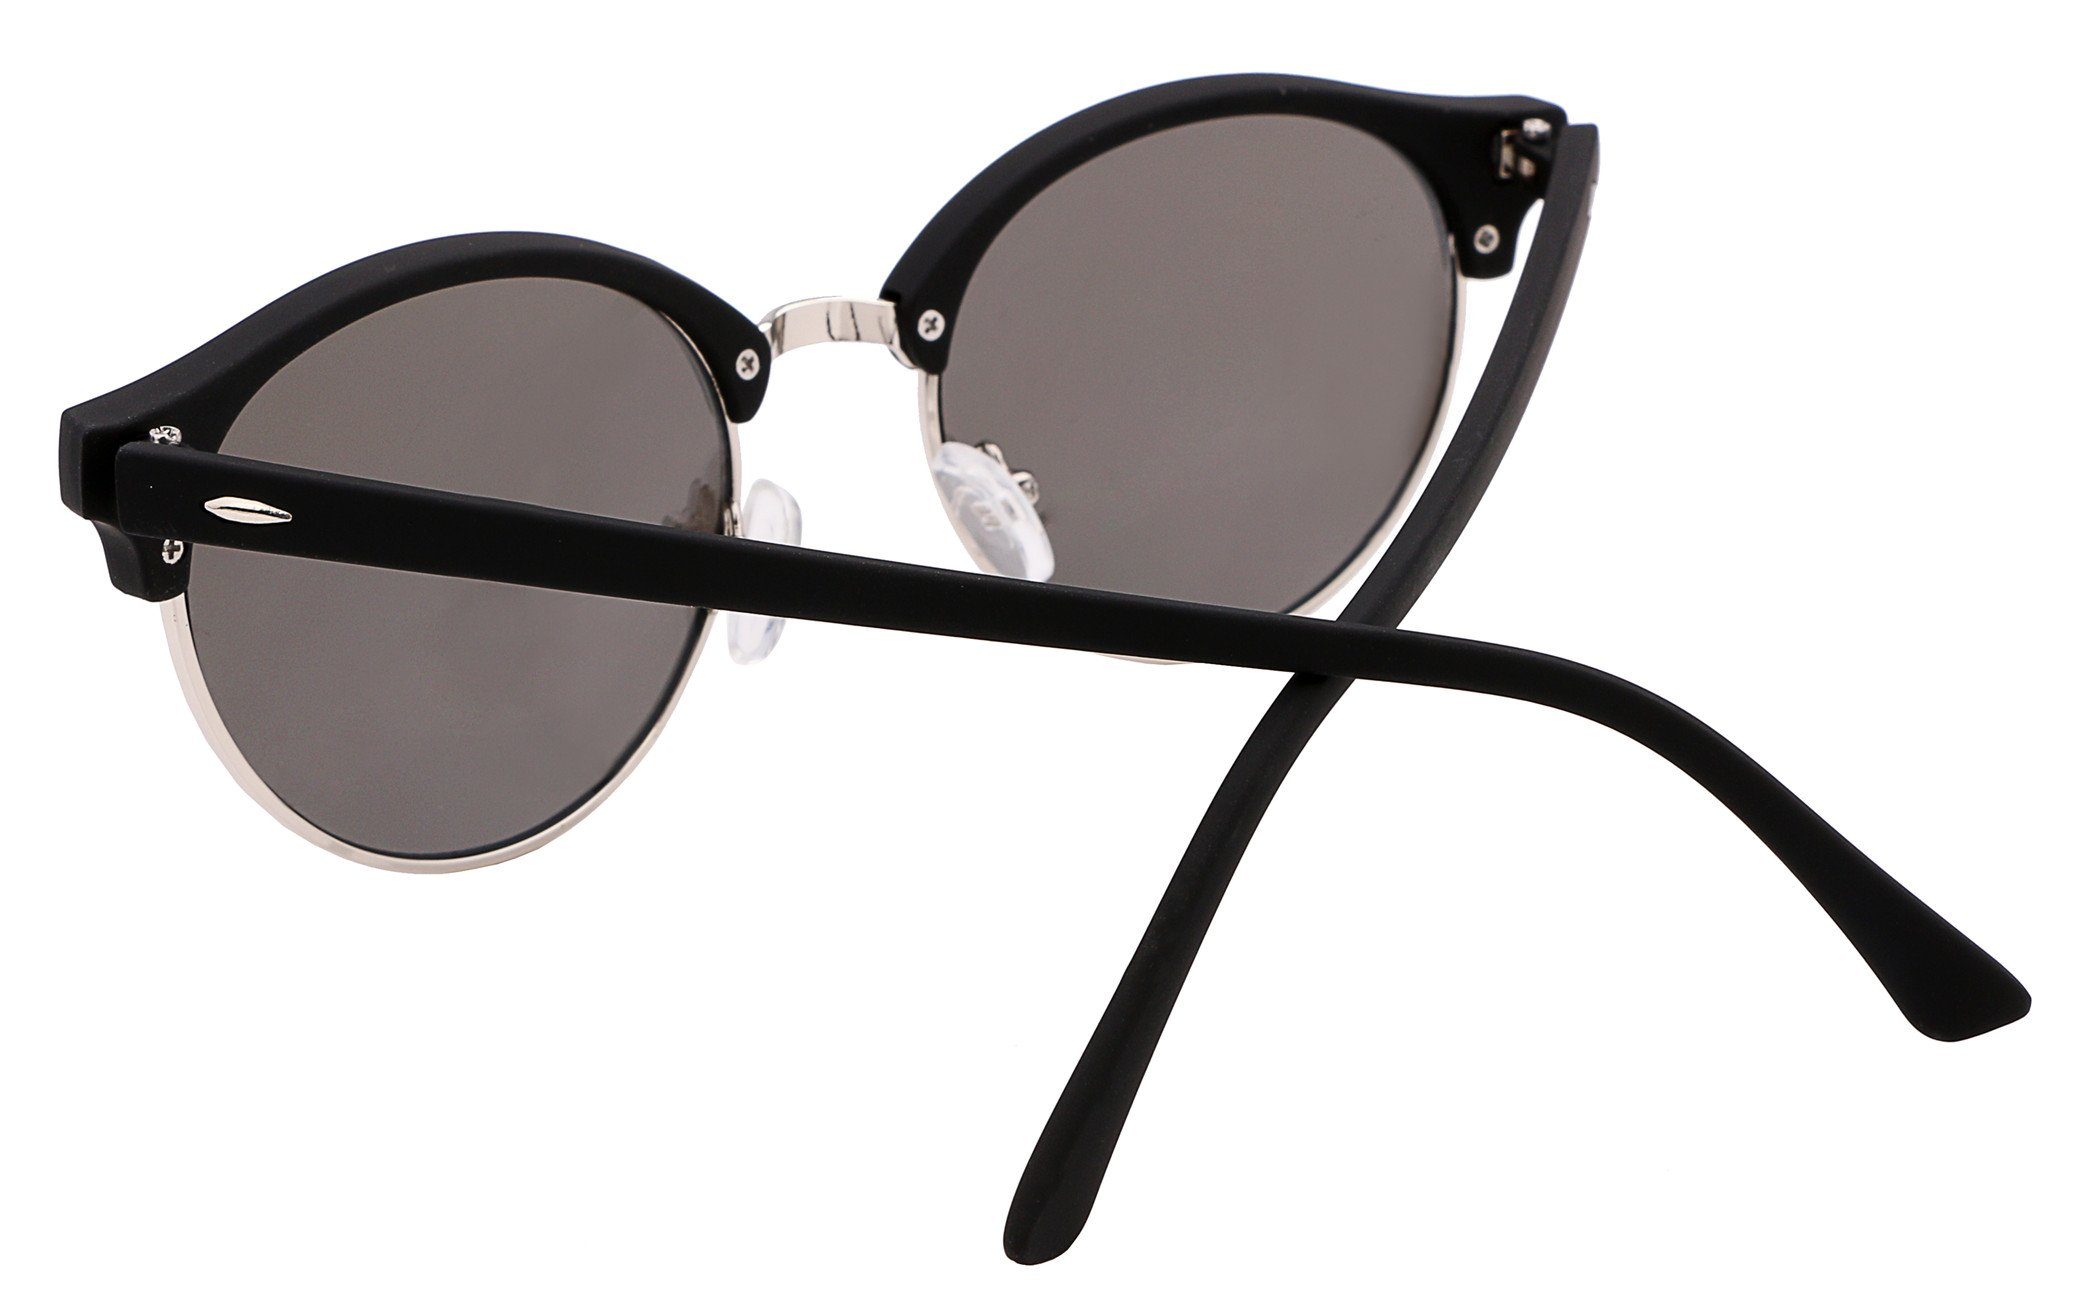 FEISEDY Classic Semi-rimless Round Frame Plastic Lens Sunglasses for Men Women B1882 by FEISEDY (Image #2)